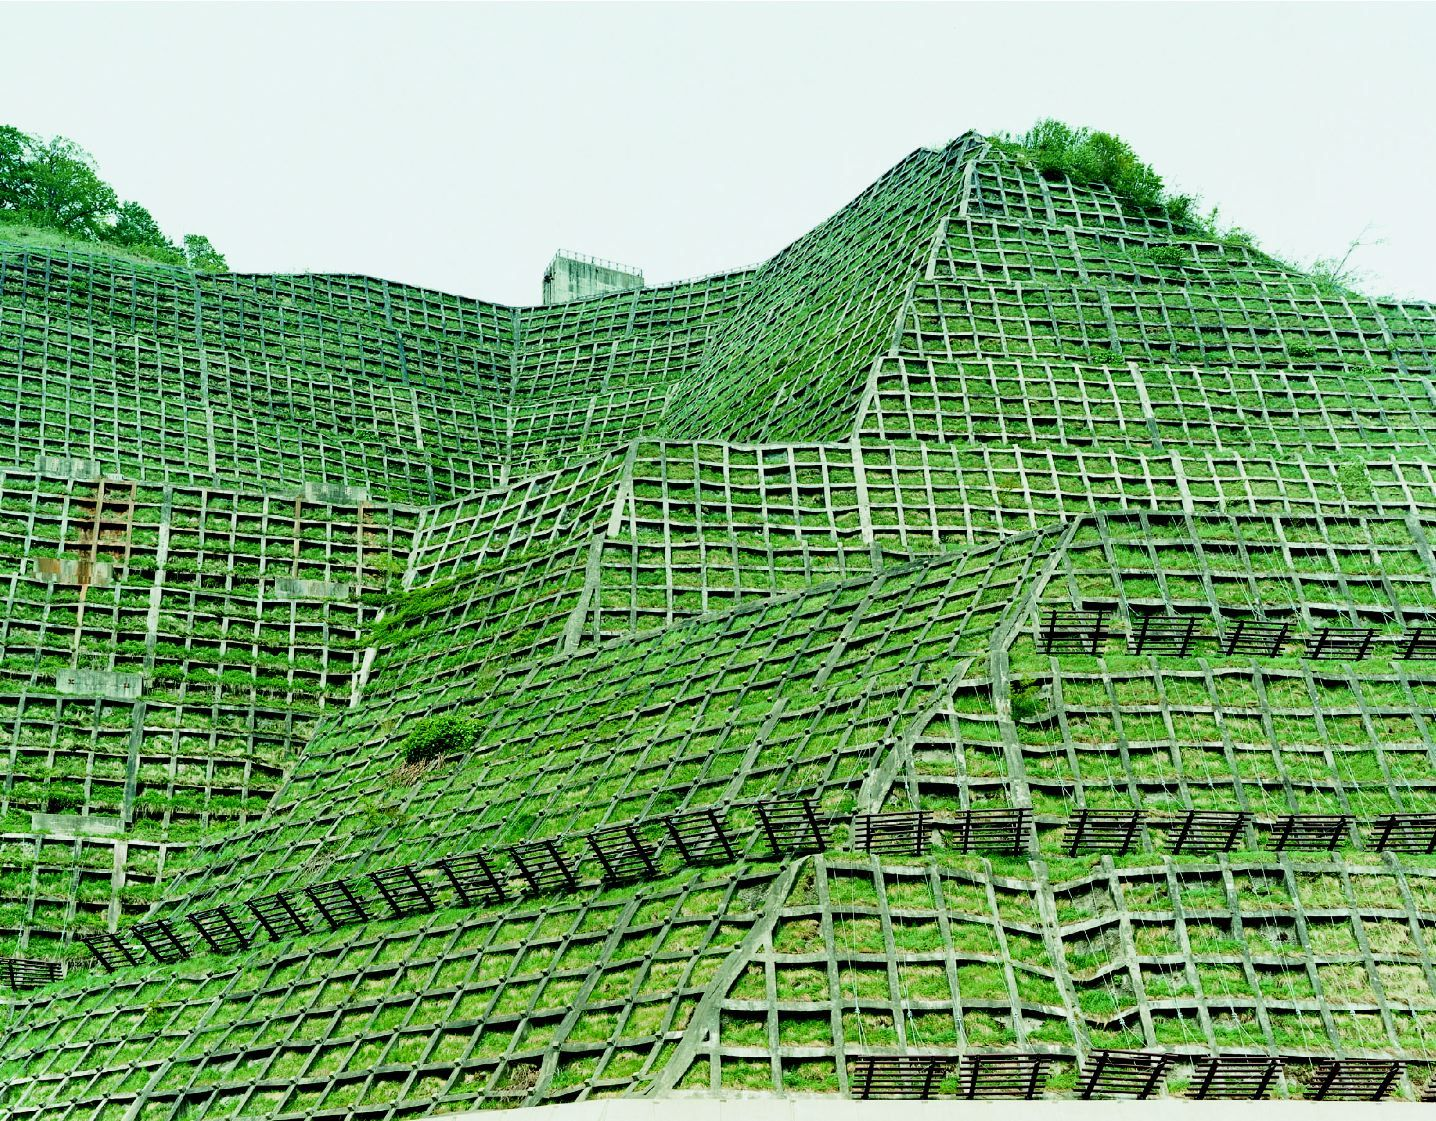 photo of grassy hill with architecture by thomas fletchner